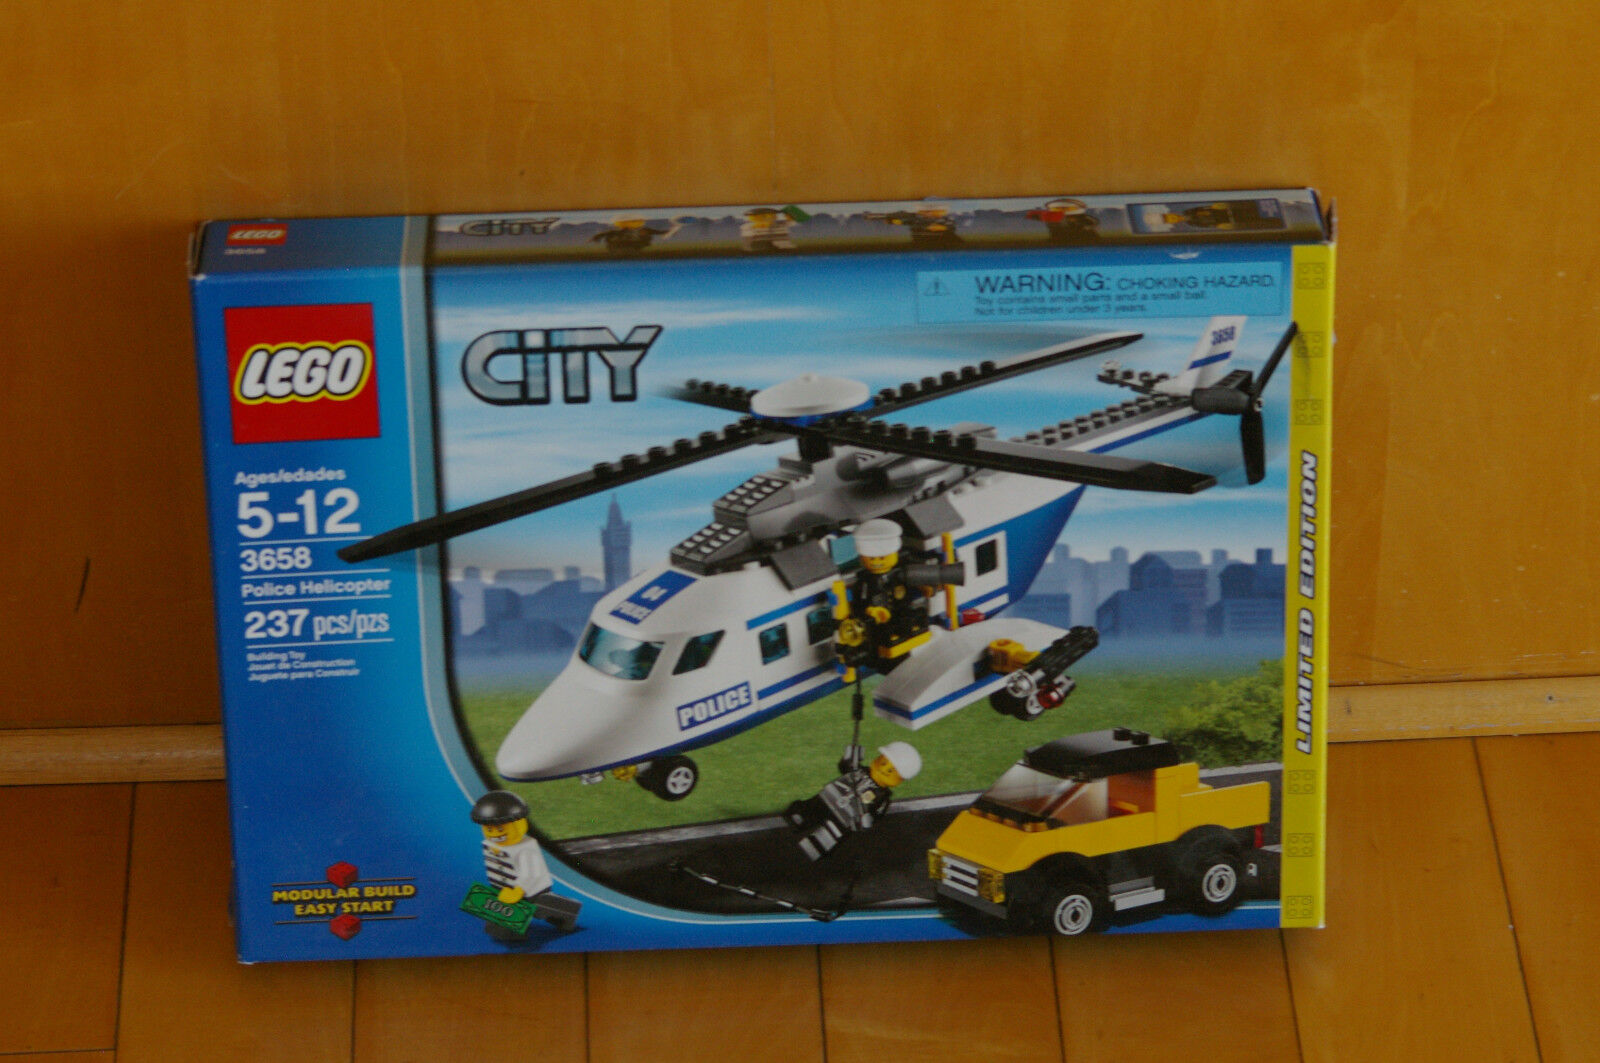 LEGO CITY 3658 - Police Helicopter - 100 % Complete